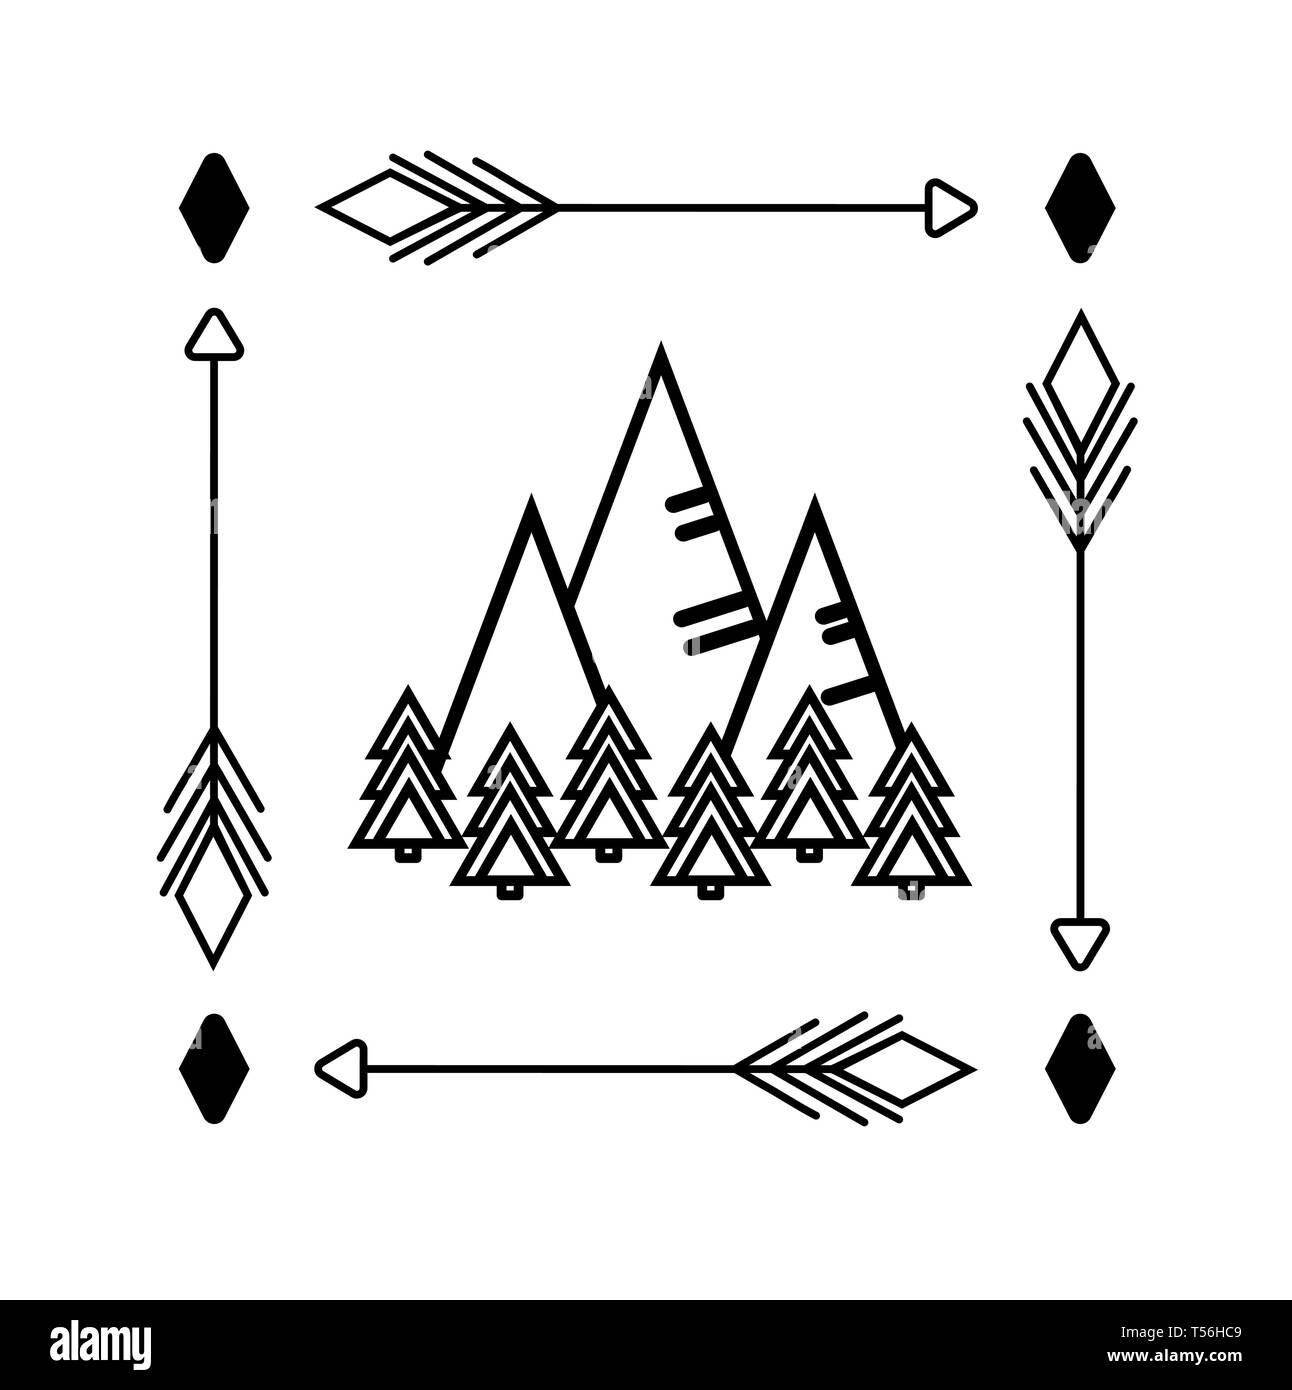 Mountains and forest. Monochrome linear drawing in minimalist style. Sticker, logo, print clothes, bag, decal glass. Vector illustration with trees, p - Stock Vector